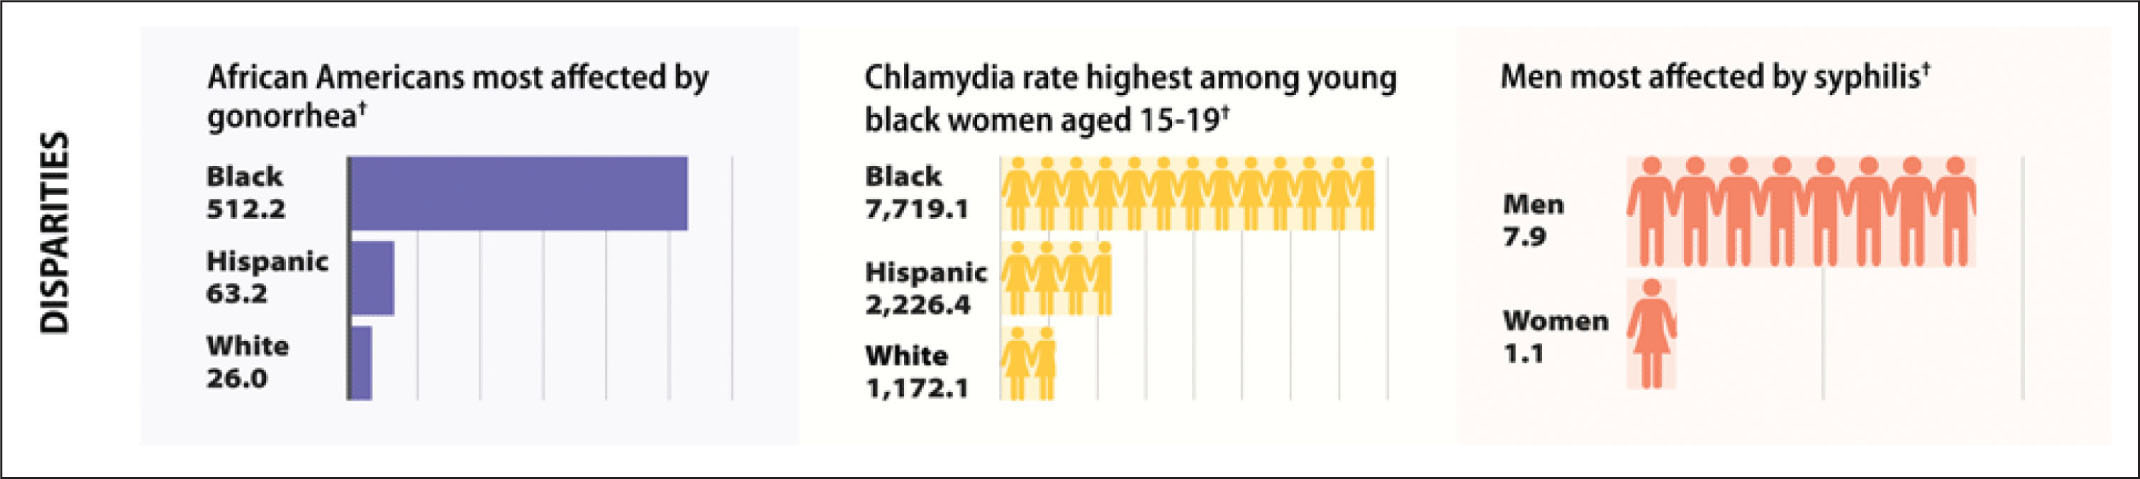 Racial and gender disparities for reported cases of gonorrhea, chlamydia, and syphilis in the United States the year 2010. †All rates are for reported cases per 100,000 people.Image courtesy of Centers for Disease Control and Prevention.21 Reprinted with permission.